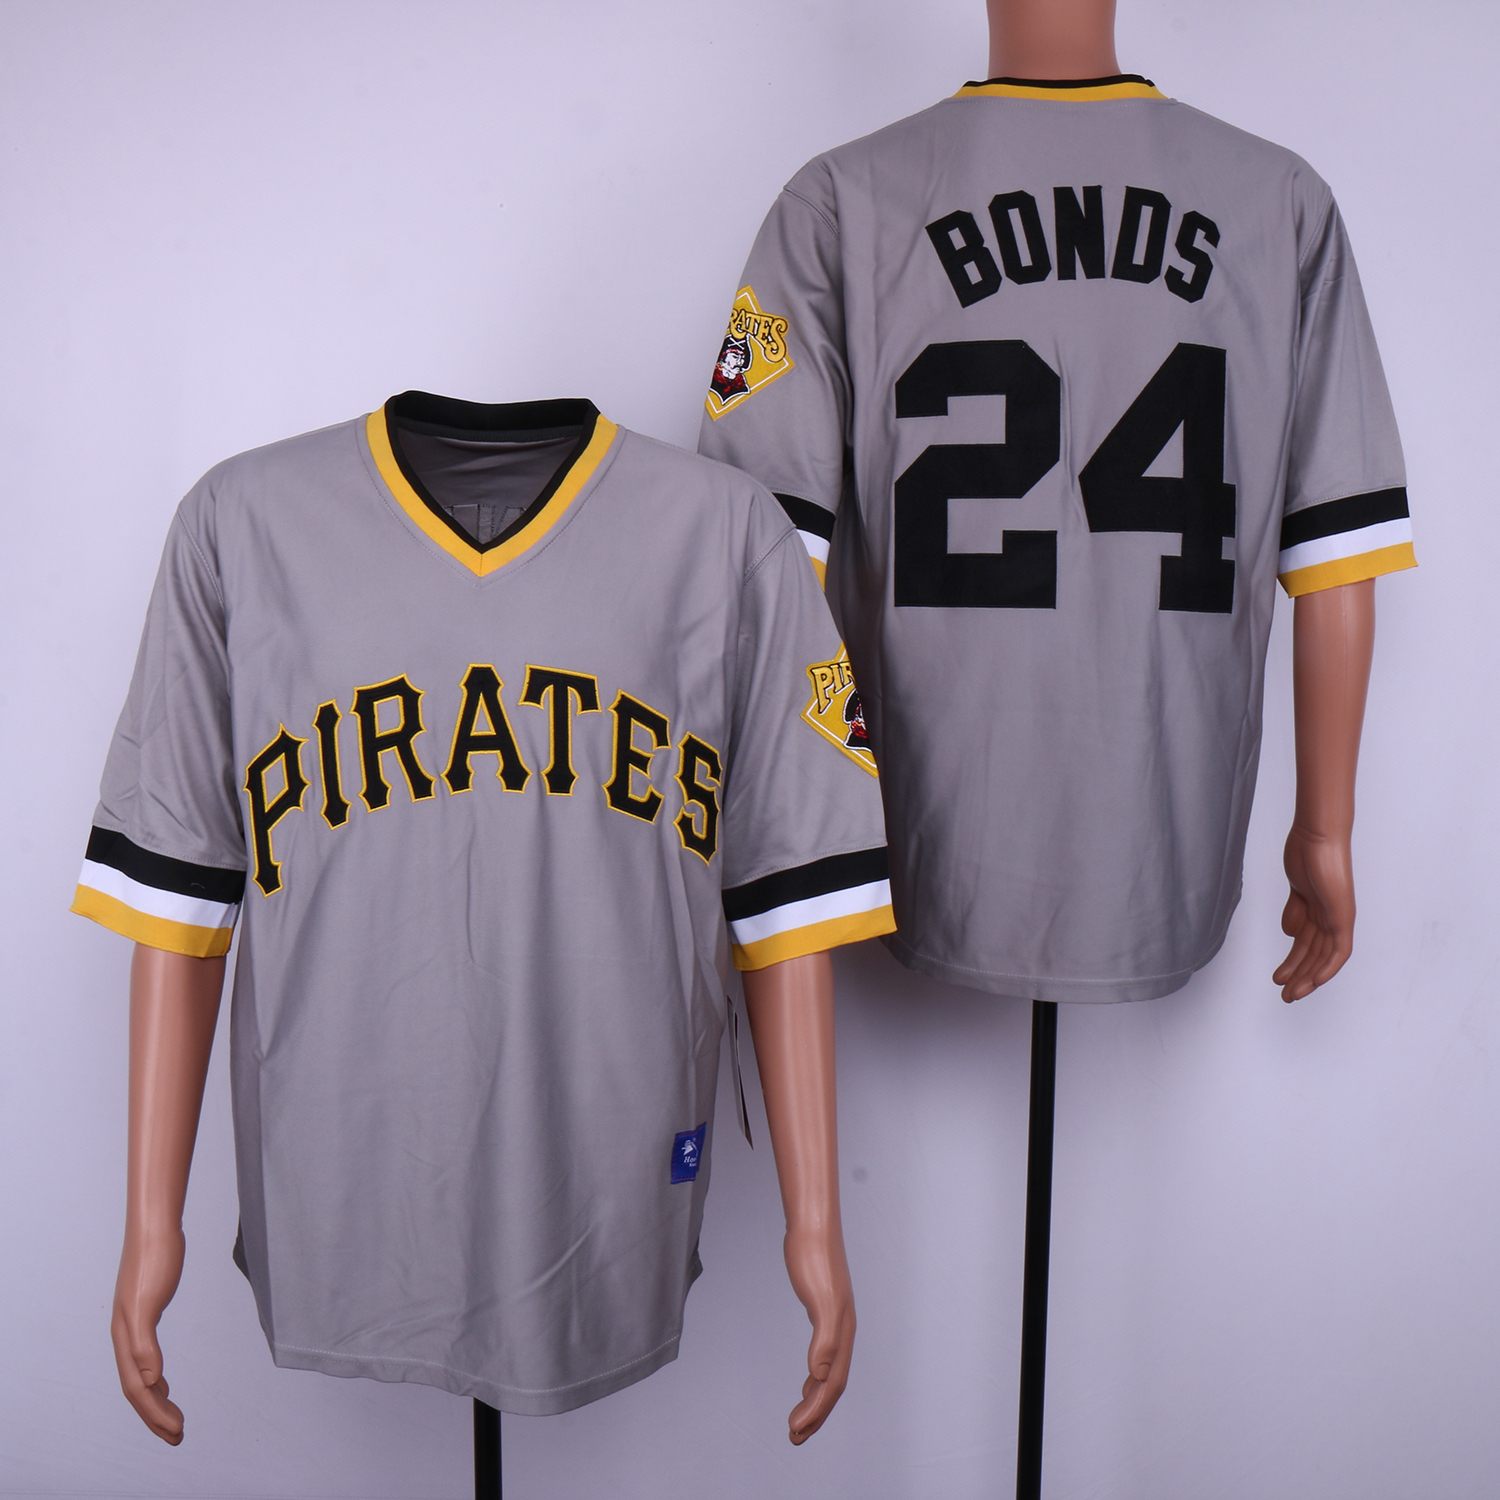 Pirates 24 Barry Bonds Gray Throwback Jersey